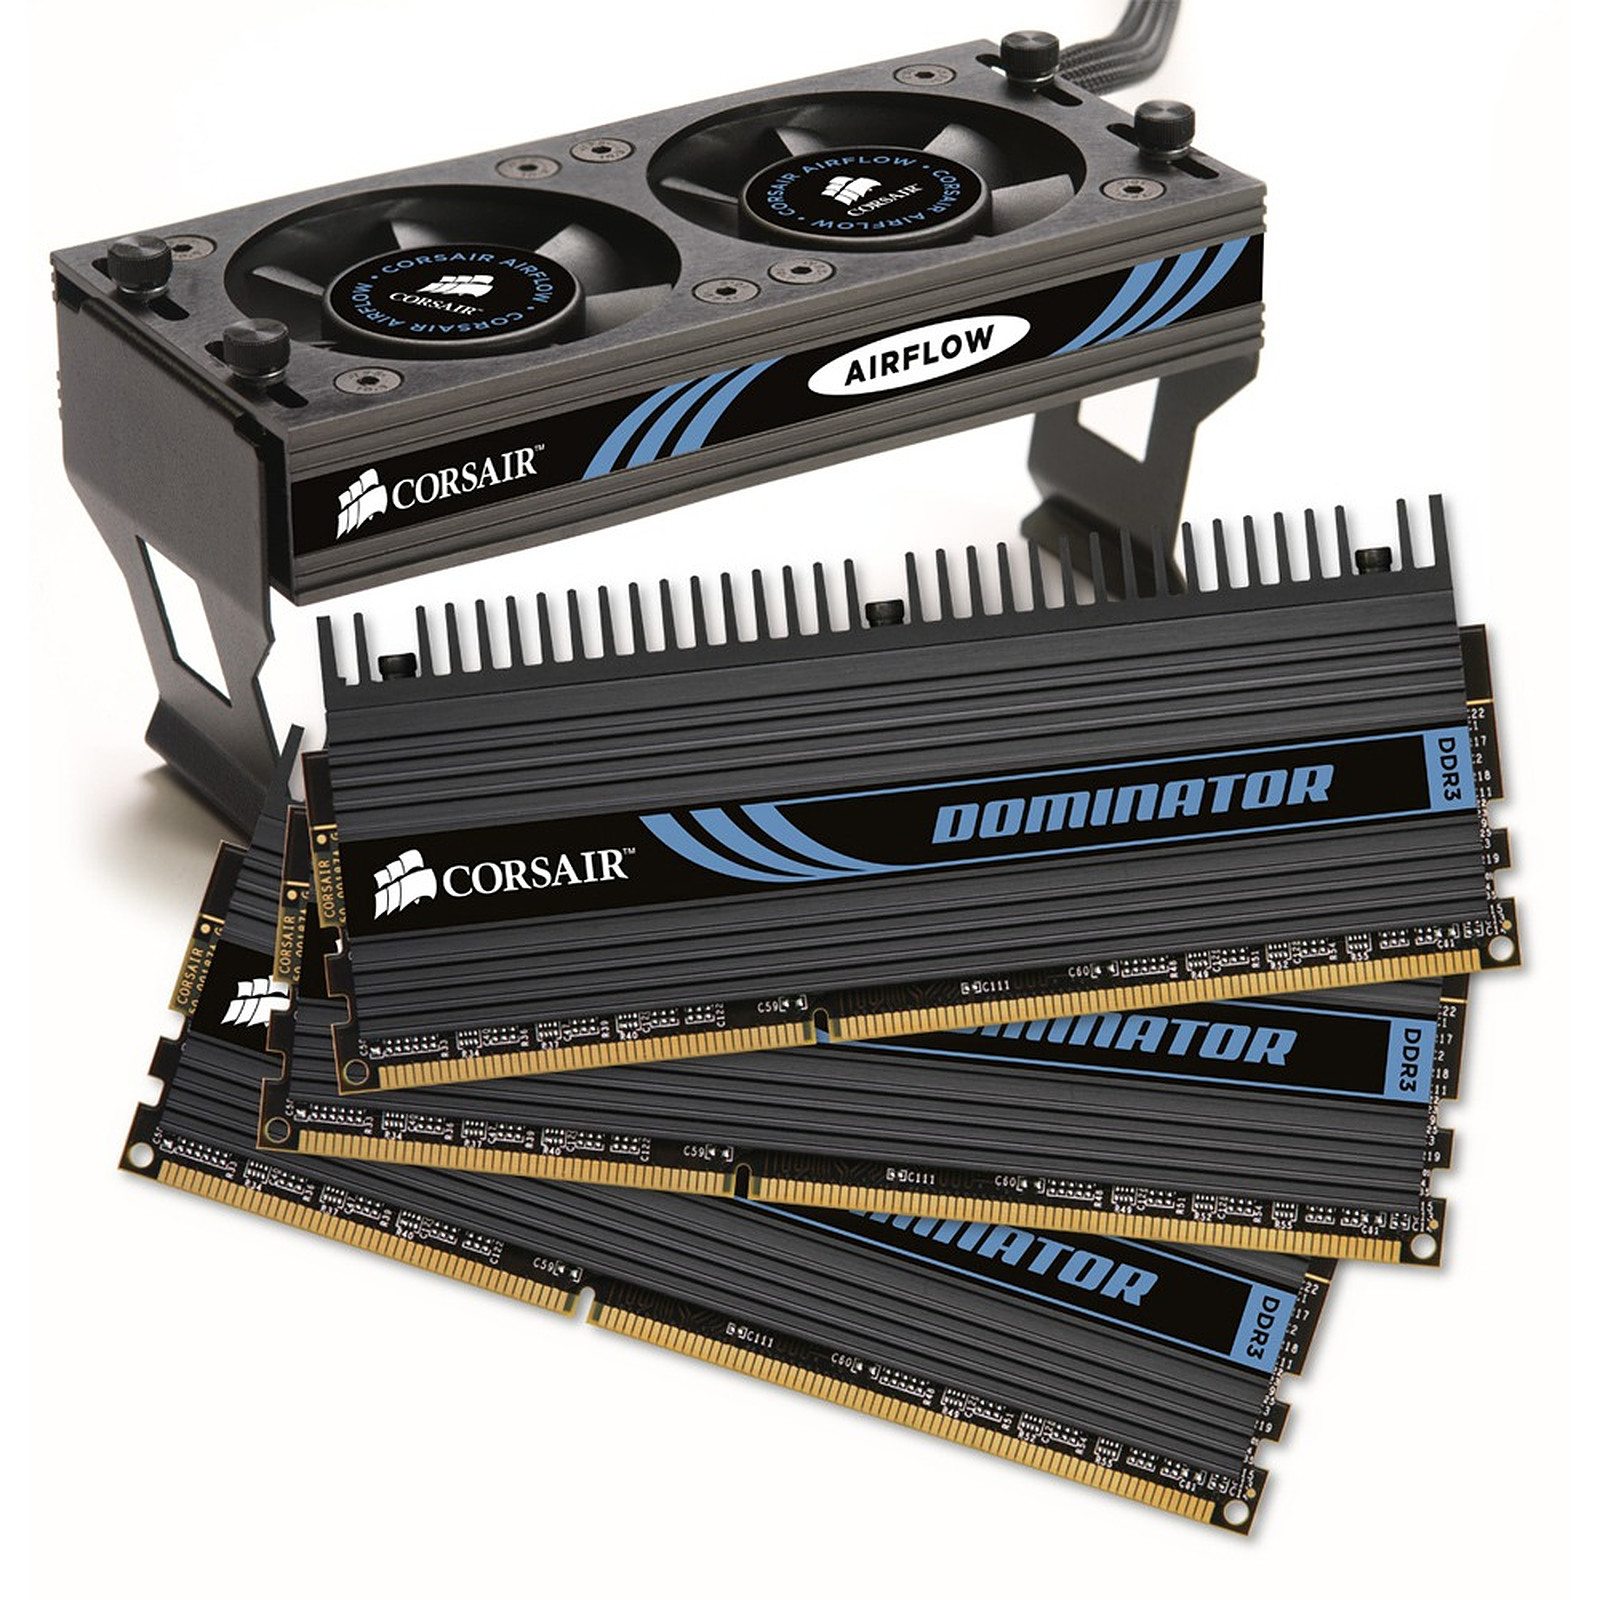 Corsair Dominator 12 Go (3x 4 Go) DDR3 1600 MHz CL9